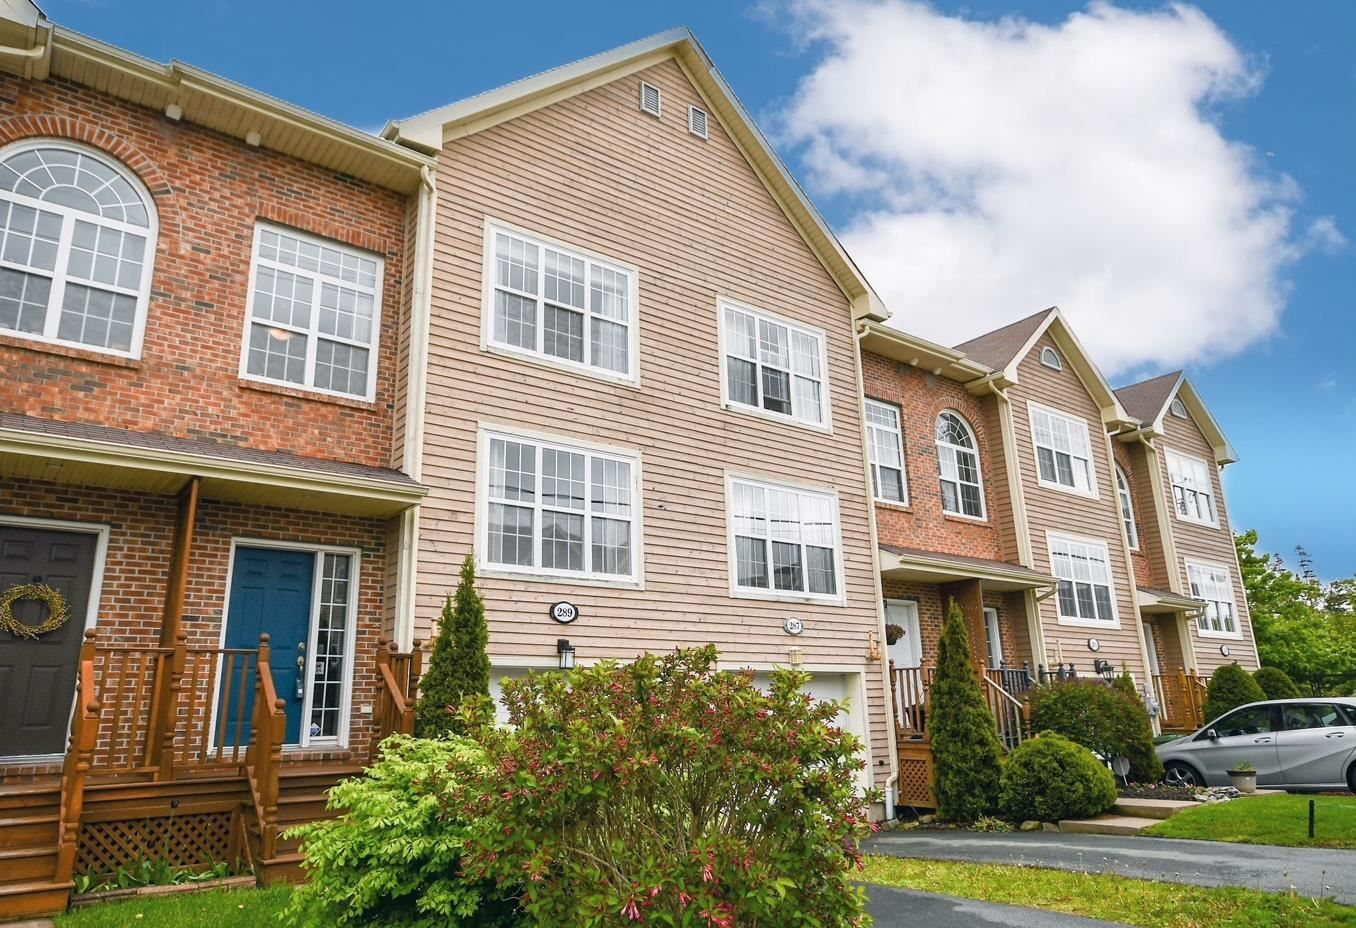 Main Photo: 289 Rutledge Street in Bedford: 20-Bedford Residential for sale (Halifax-Dartmouth)  : MLS®# 202116673